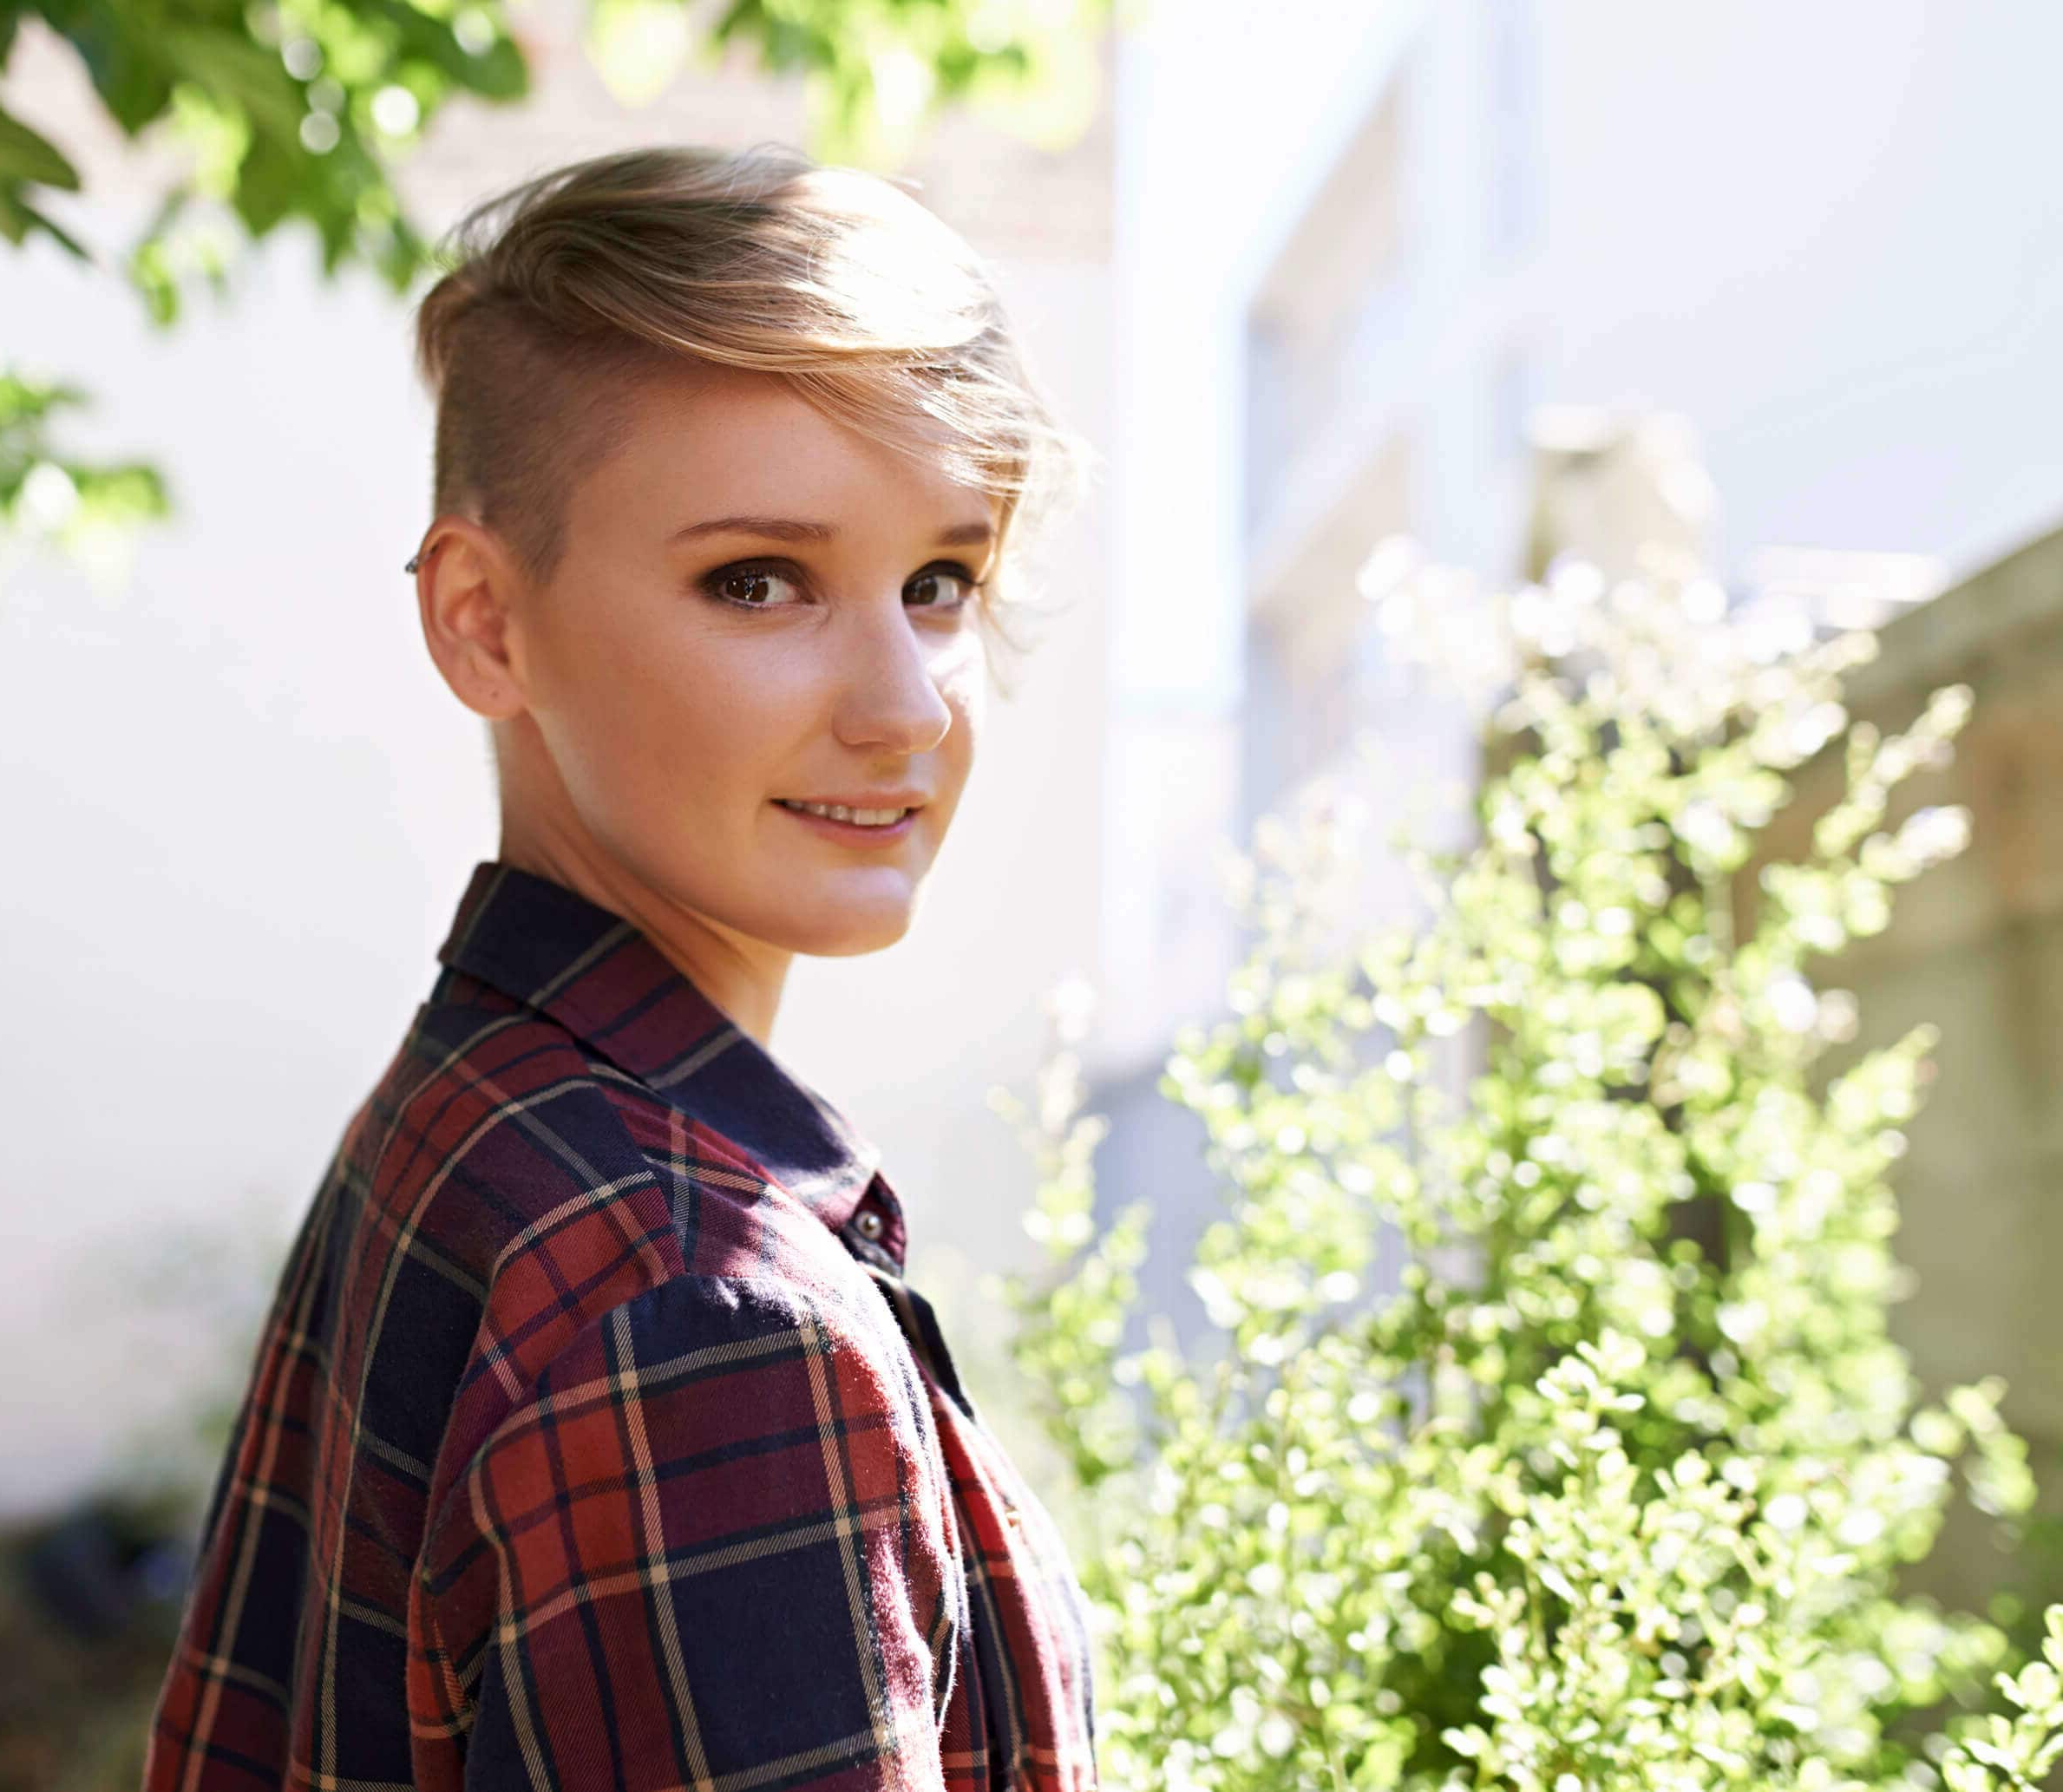 Shaved Hairstyles For Women: 6 Short Hairstyles To Inspire With Regard To Short Haircuts With One Side Shaved (View 17 of 25)